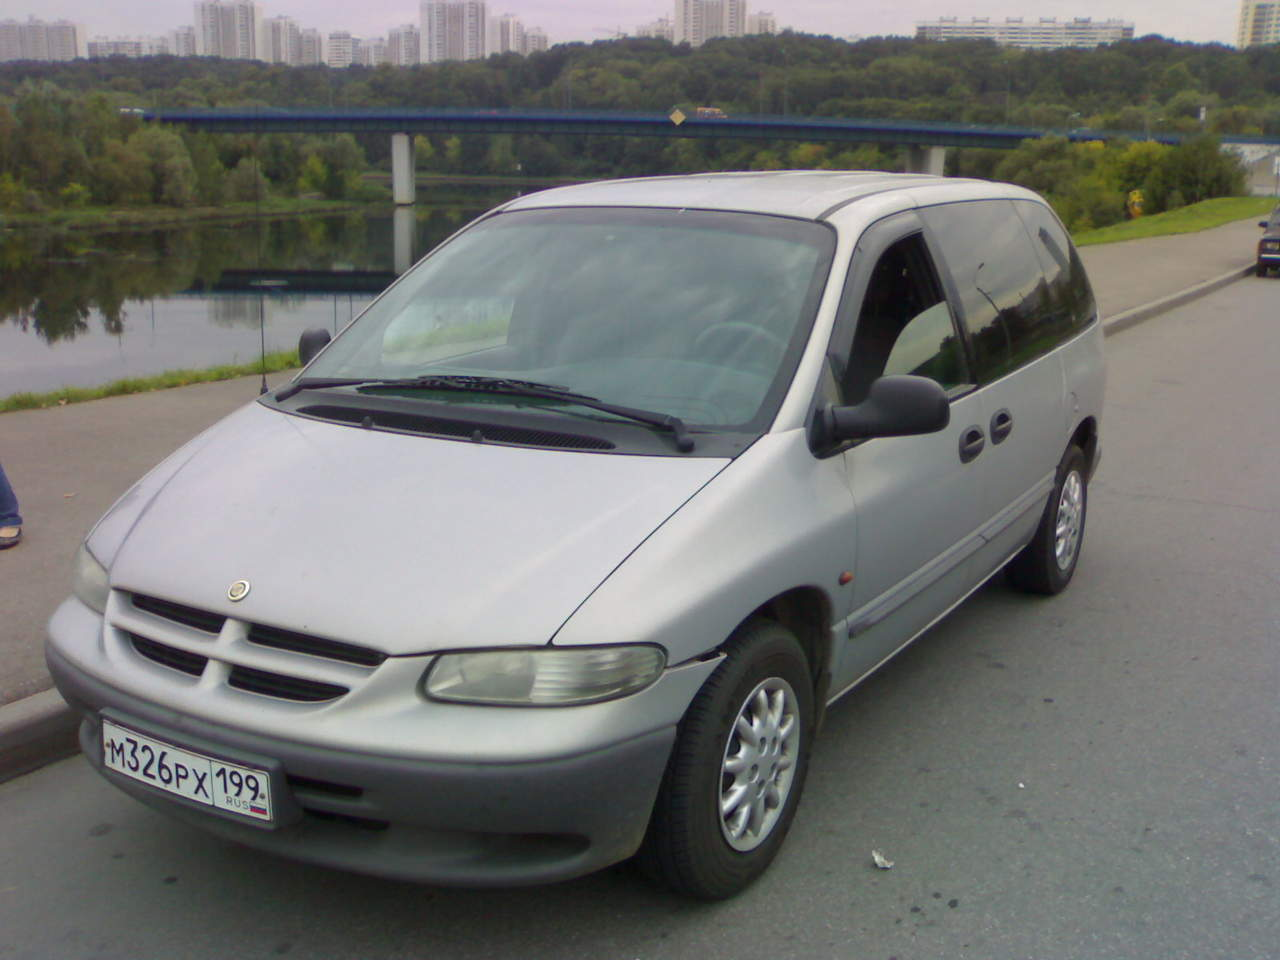 chrysler voyager 2000 - photo #6